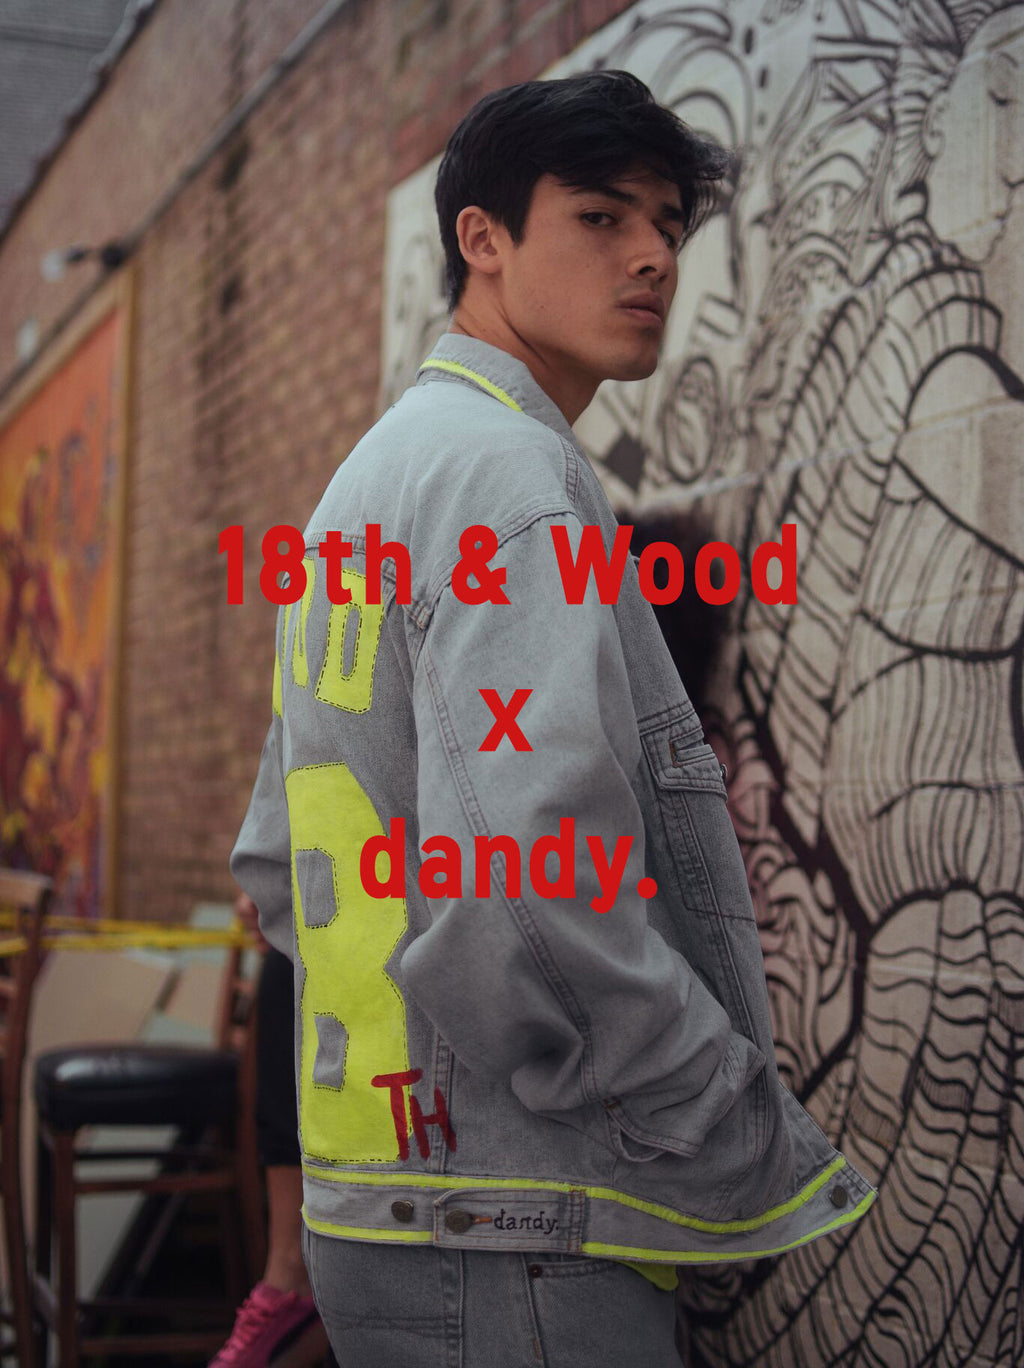 18th & Wood X dandy.